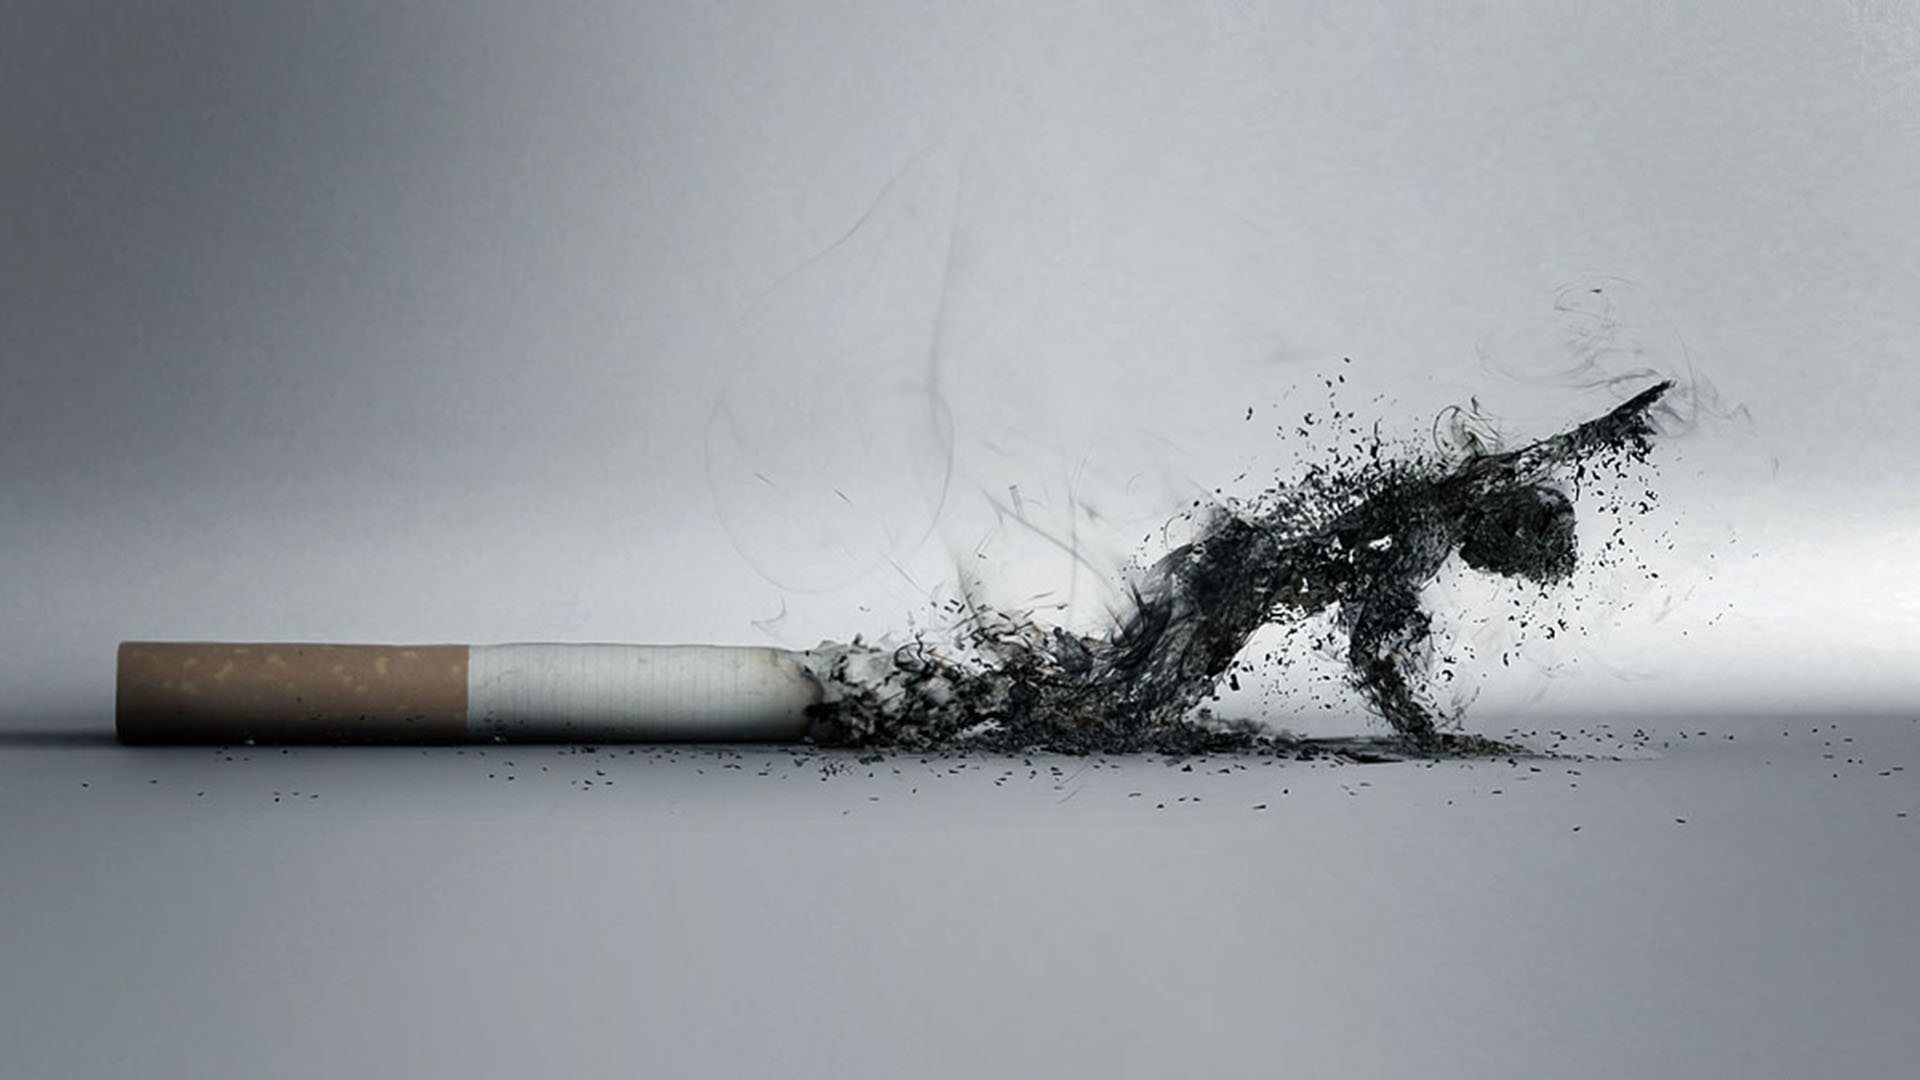 85 Smoking Hd Wallpapers Background Images Wallpaper Abyss